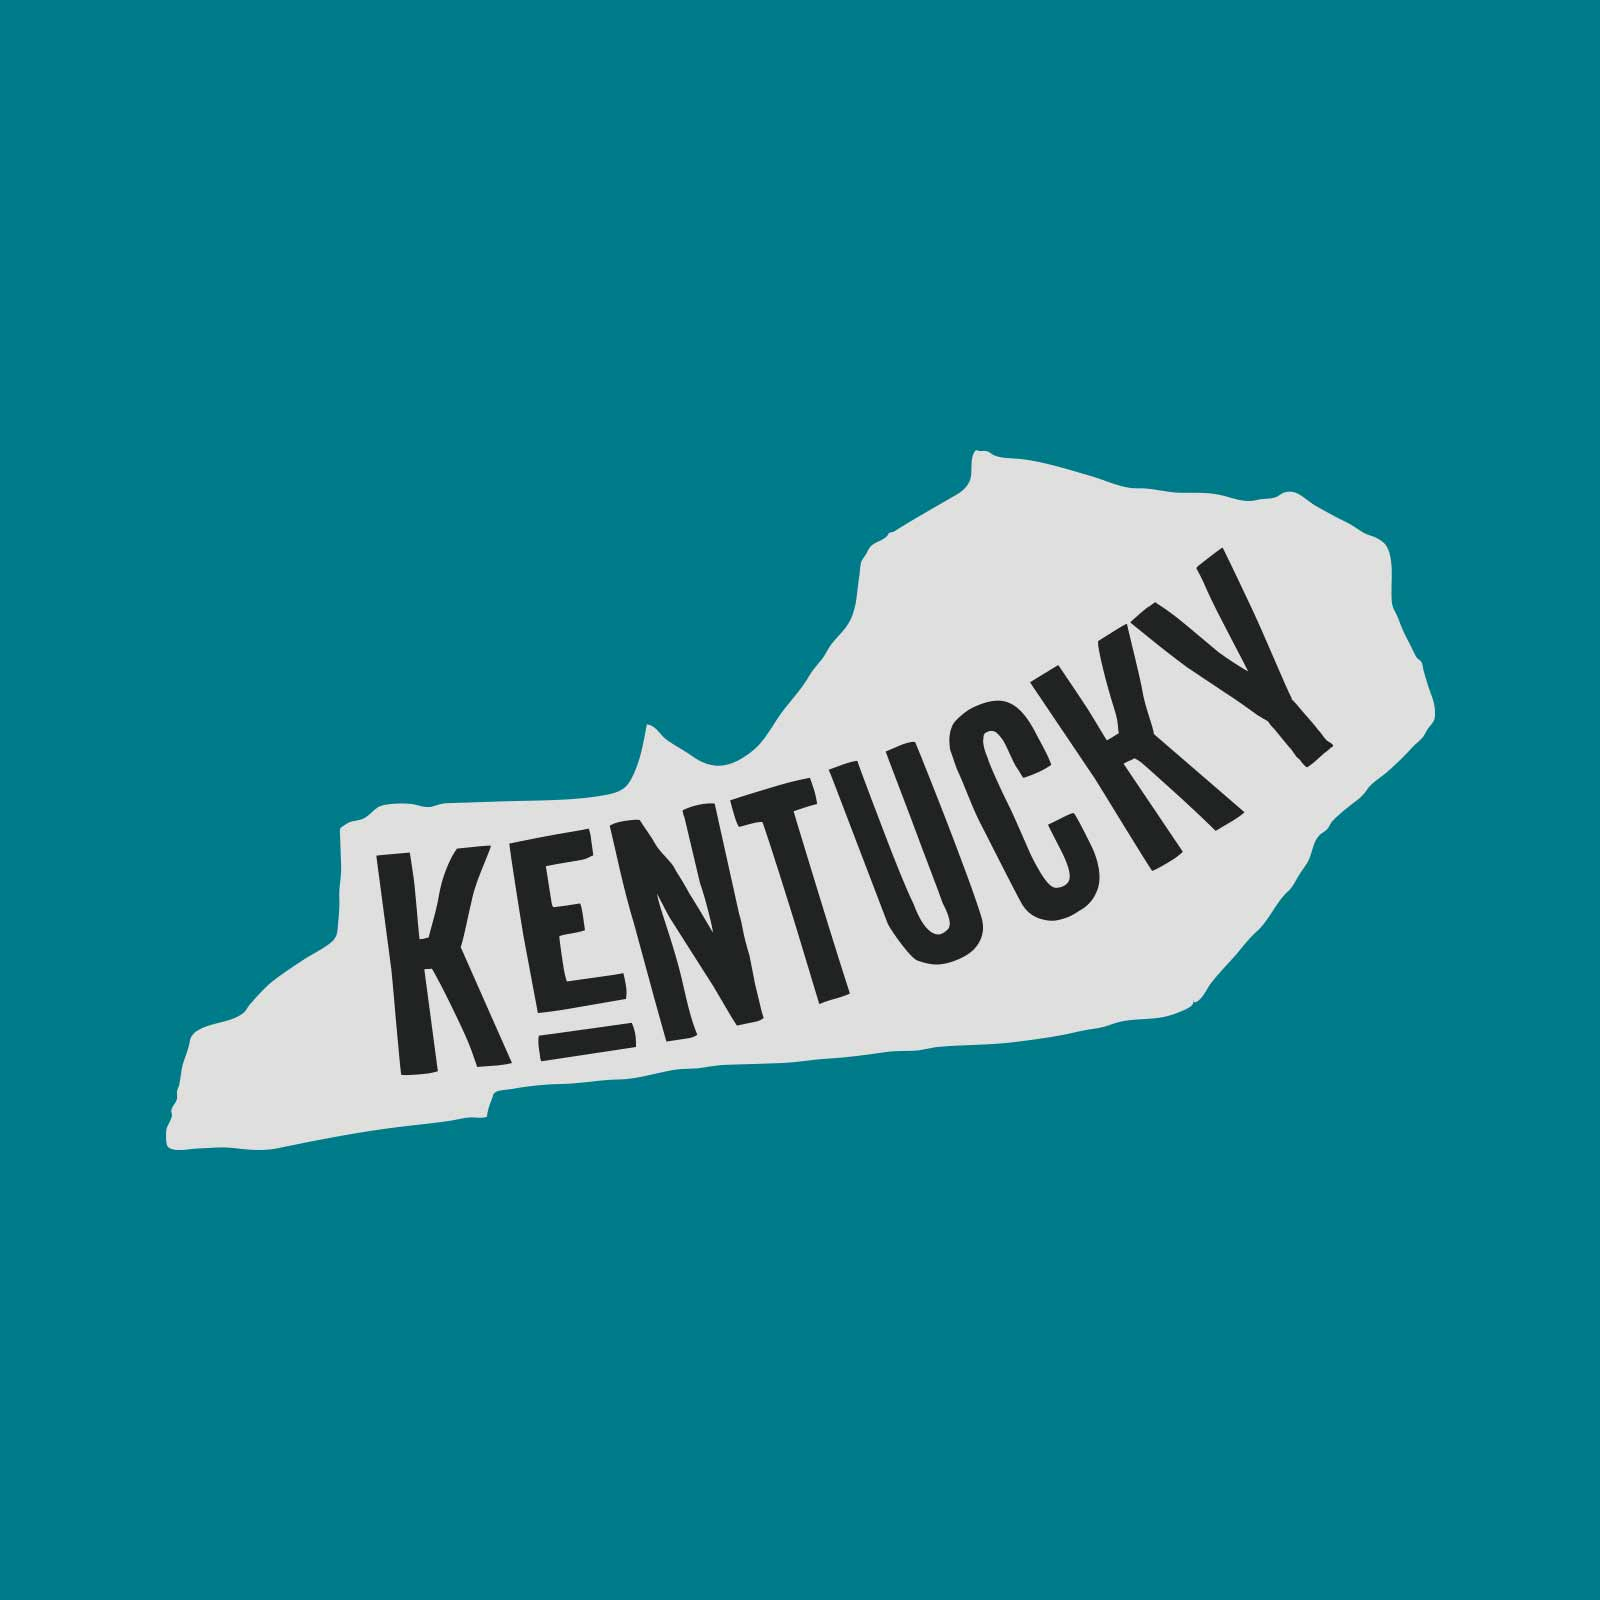 How to start a business in Kentucky